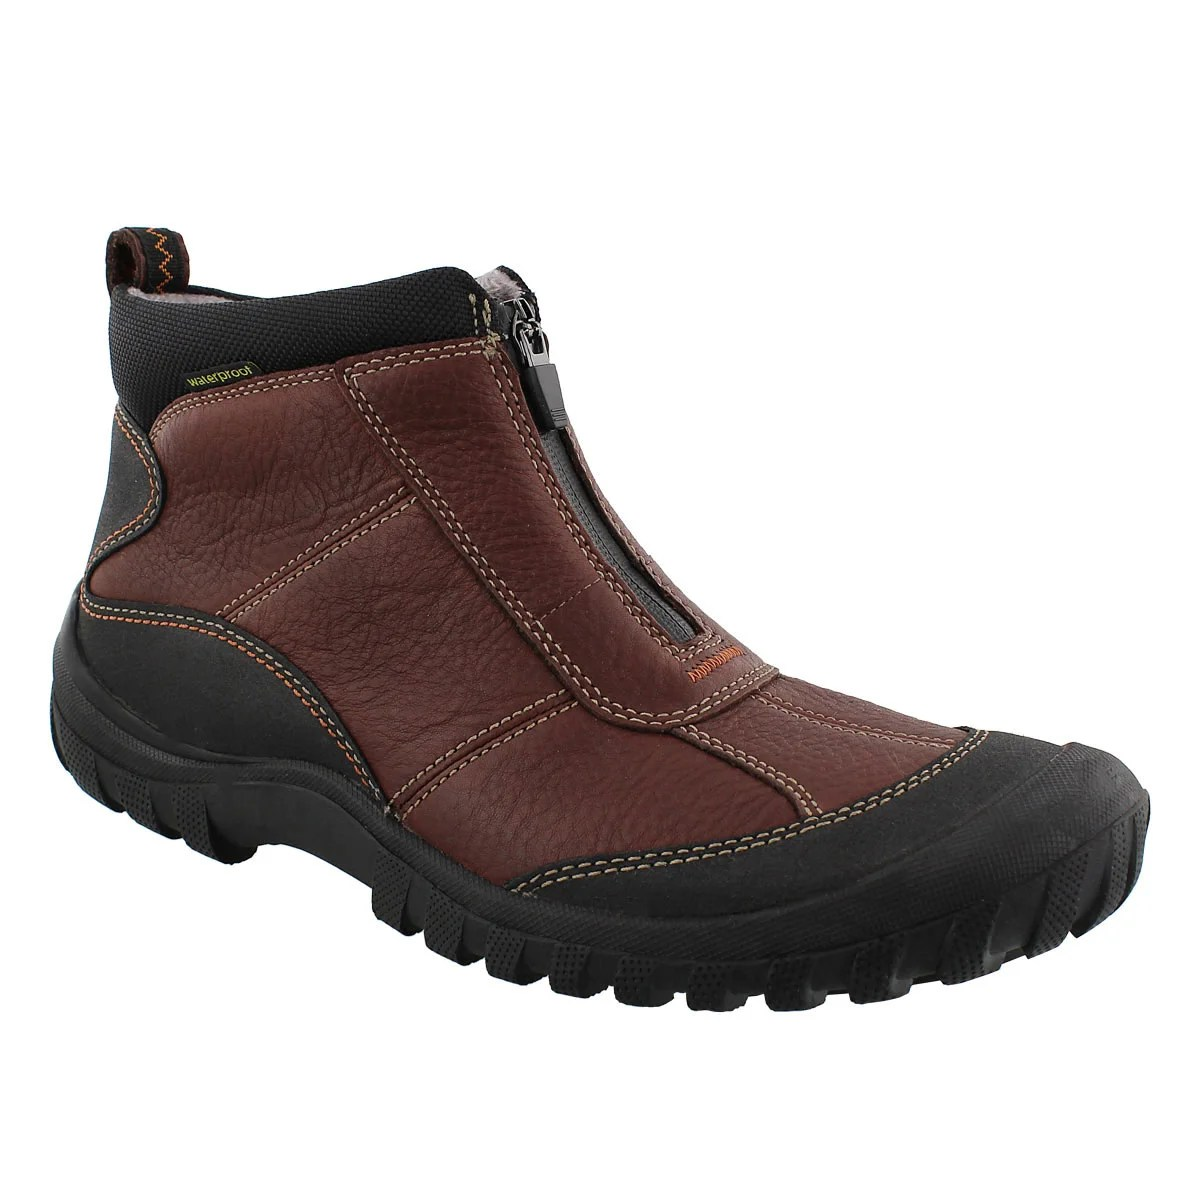 c58bc3a22bf Mens Slipper Boots With Zips. men 39 s quarter zip sweaters orvis ...